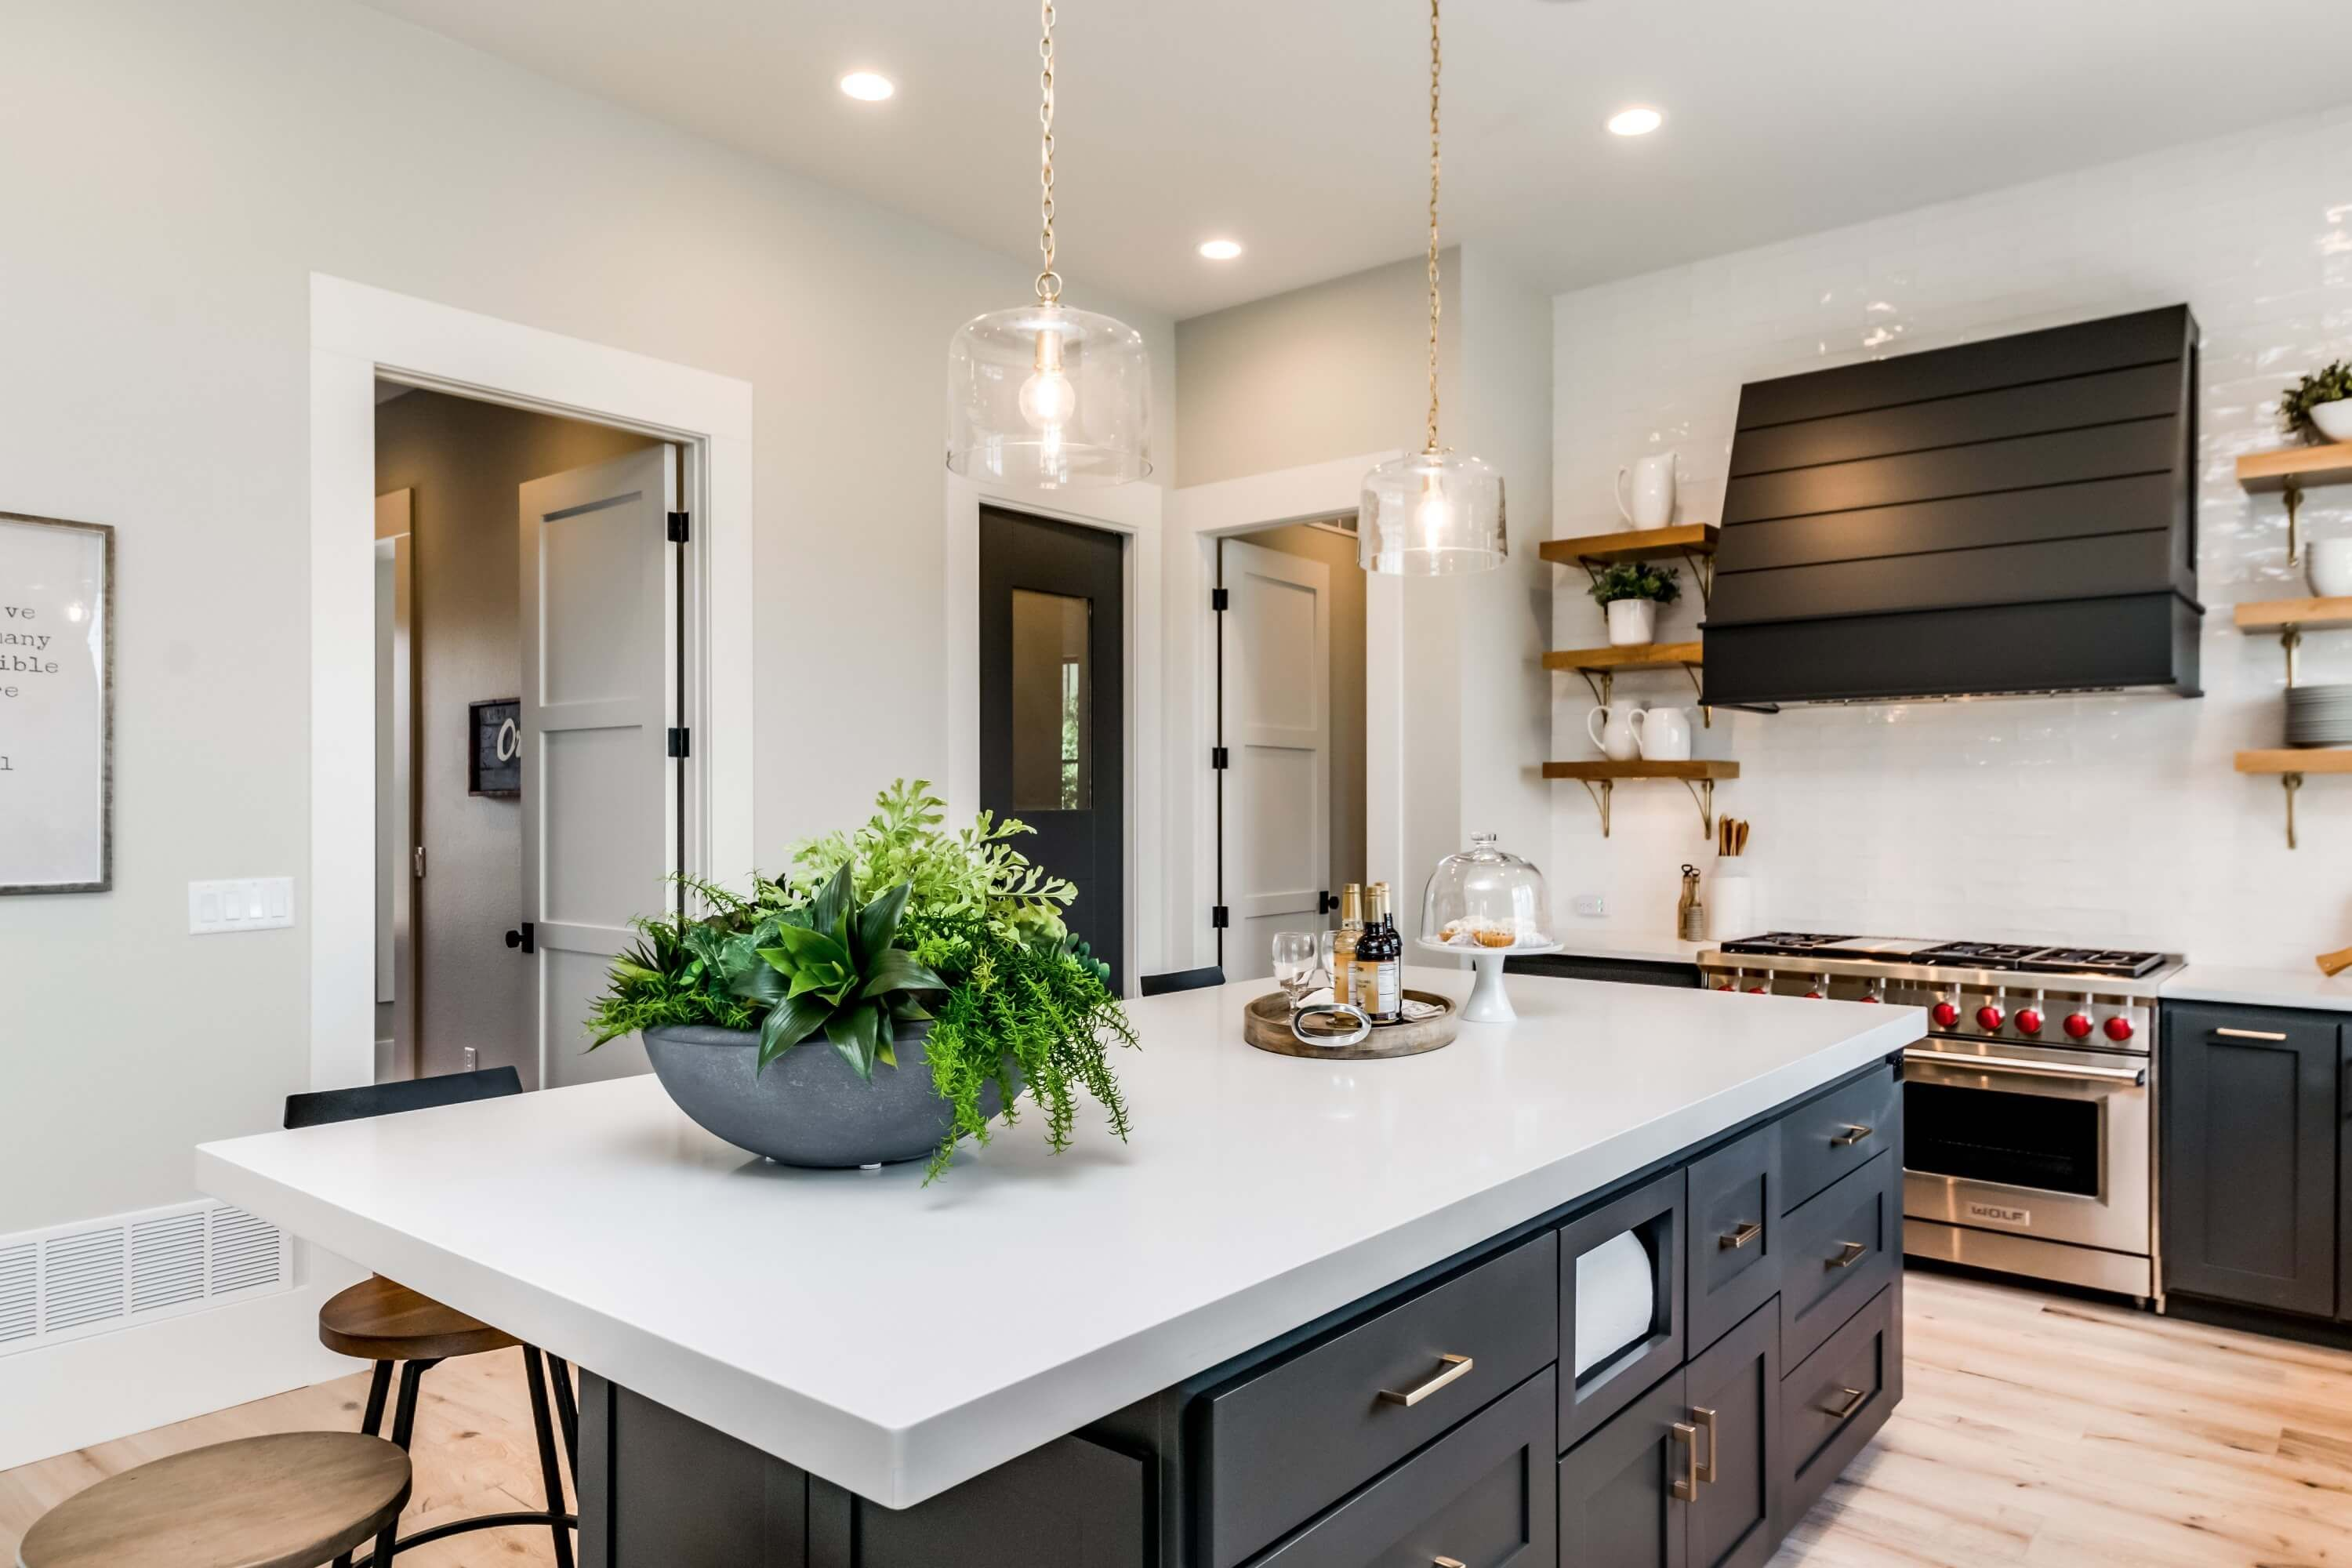 Here Is A Sneak Preview Of Our Home For The 2017 Parade Of Homes Colorado Springs Urban Farmhouse Black Kitchen Countertops Urban Farmhouse Designs